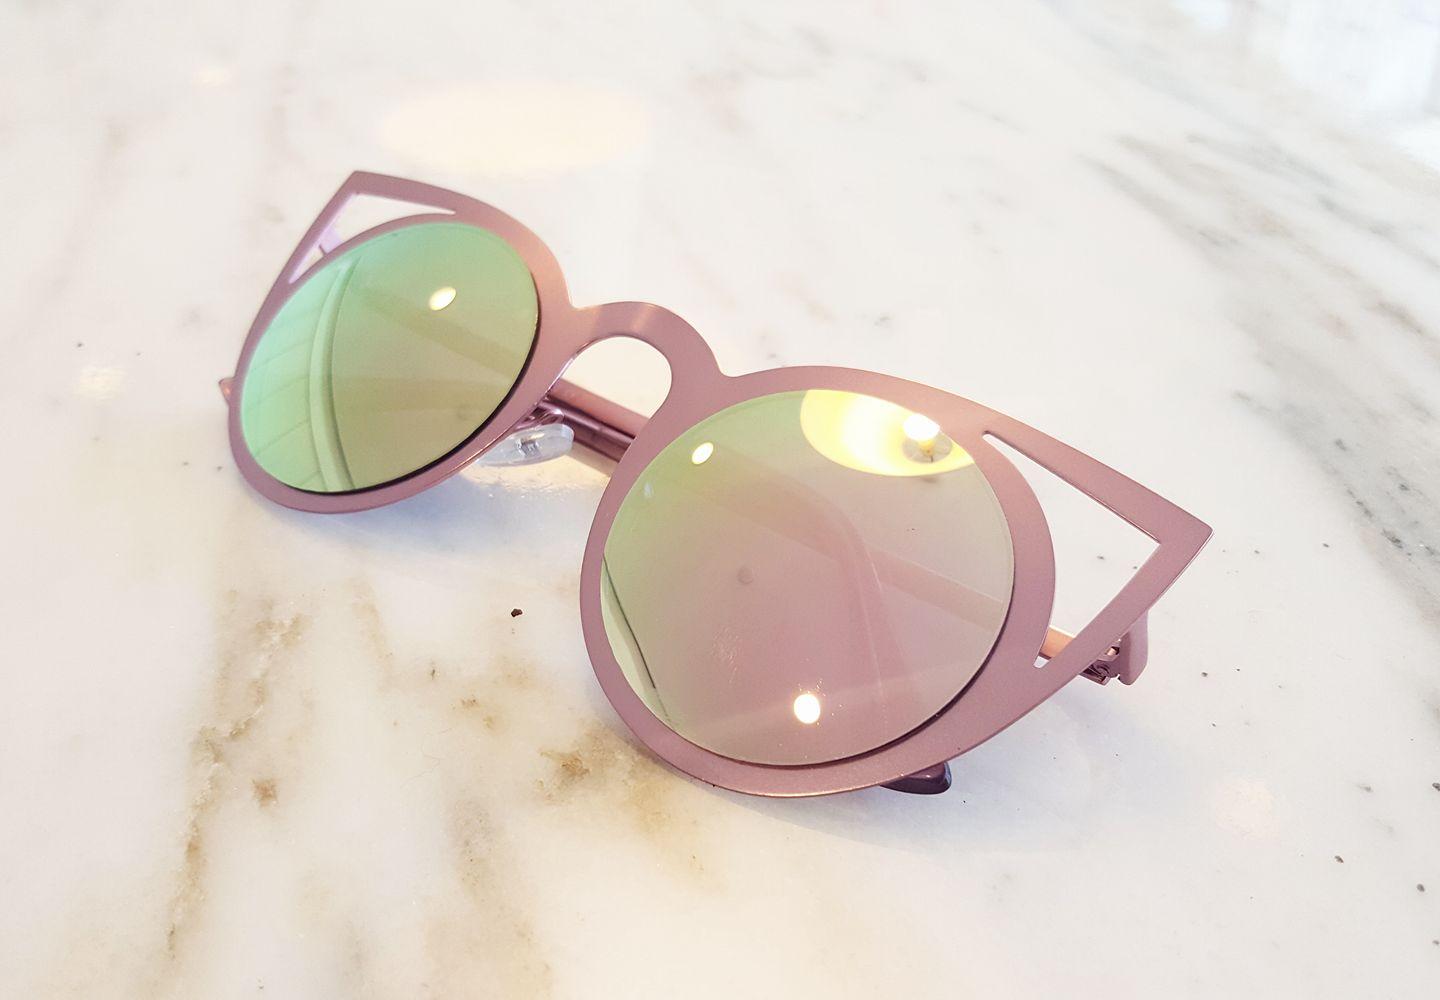 rose all day - cat eye sunnies - brooklyn postcards - spring in new york city